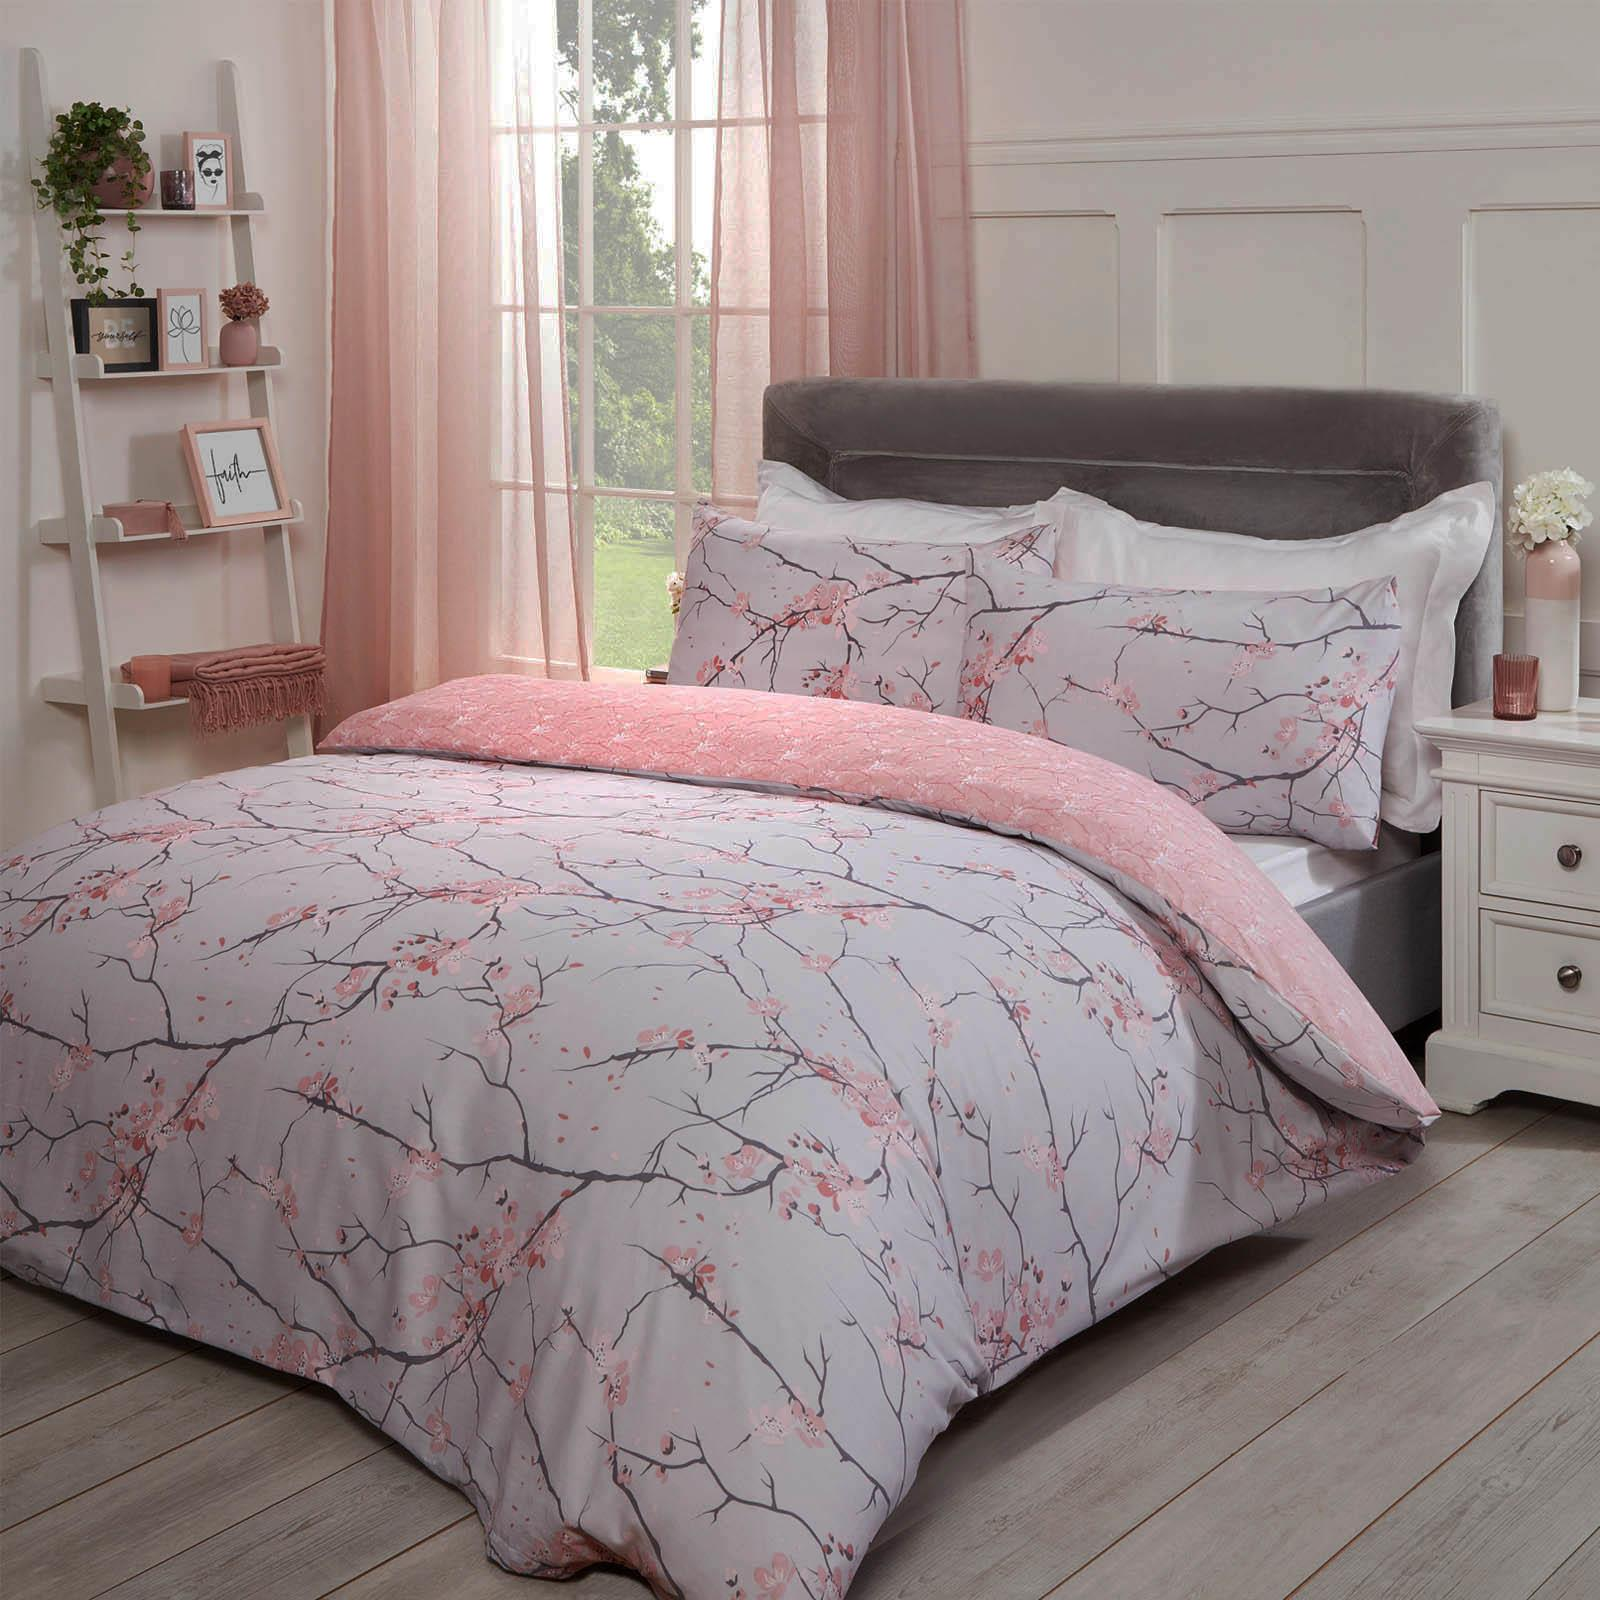 thumbnail 11 - Dreamscene Spring Blossoms Duvet Cover with Pillowcases Bedding Set Blush Ochre